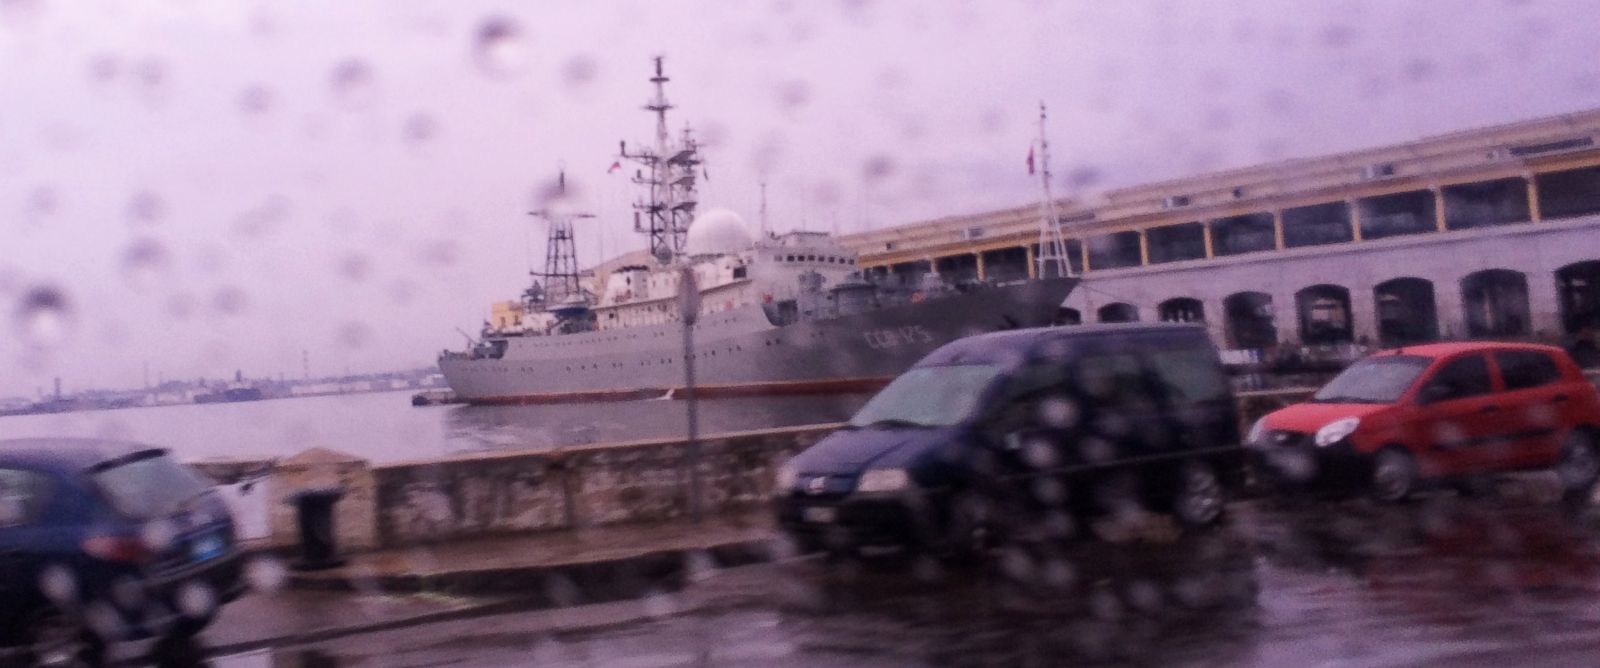 PHOTO: Days before US-Cuba talks were set to begin, the Russian spy ship Viktor Leonov CCB-175 was seen docked in the Havana harbor on Jan. 20, 2014.